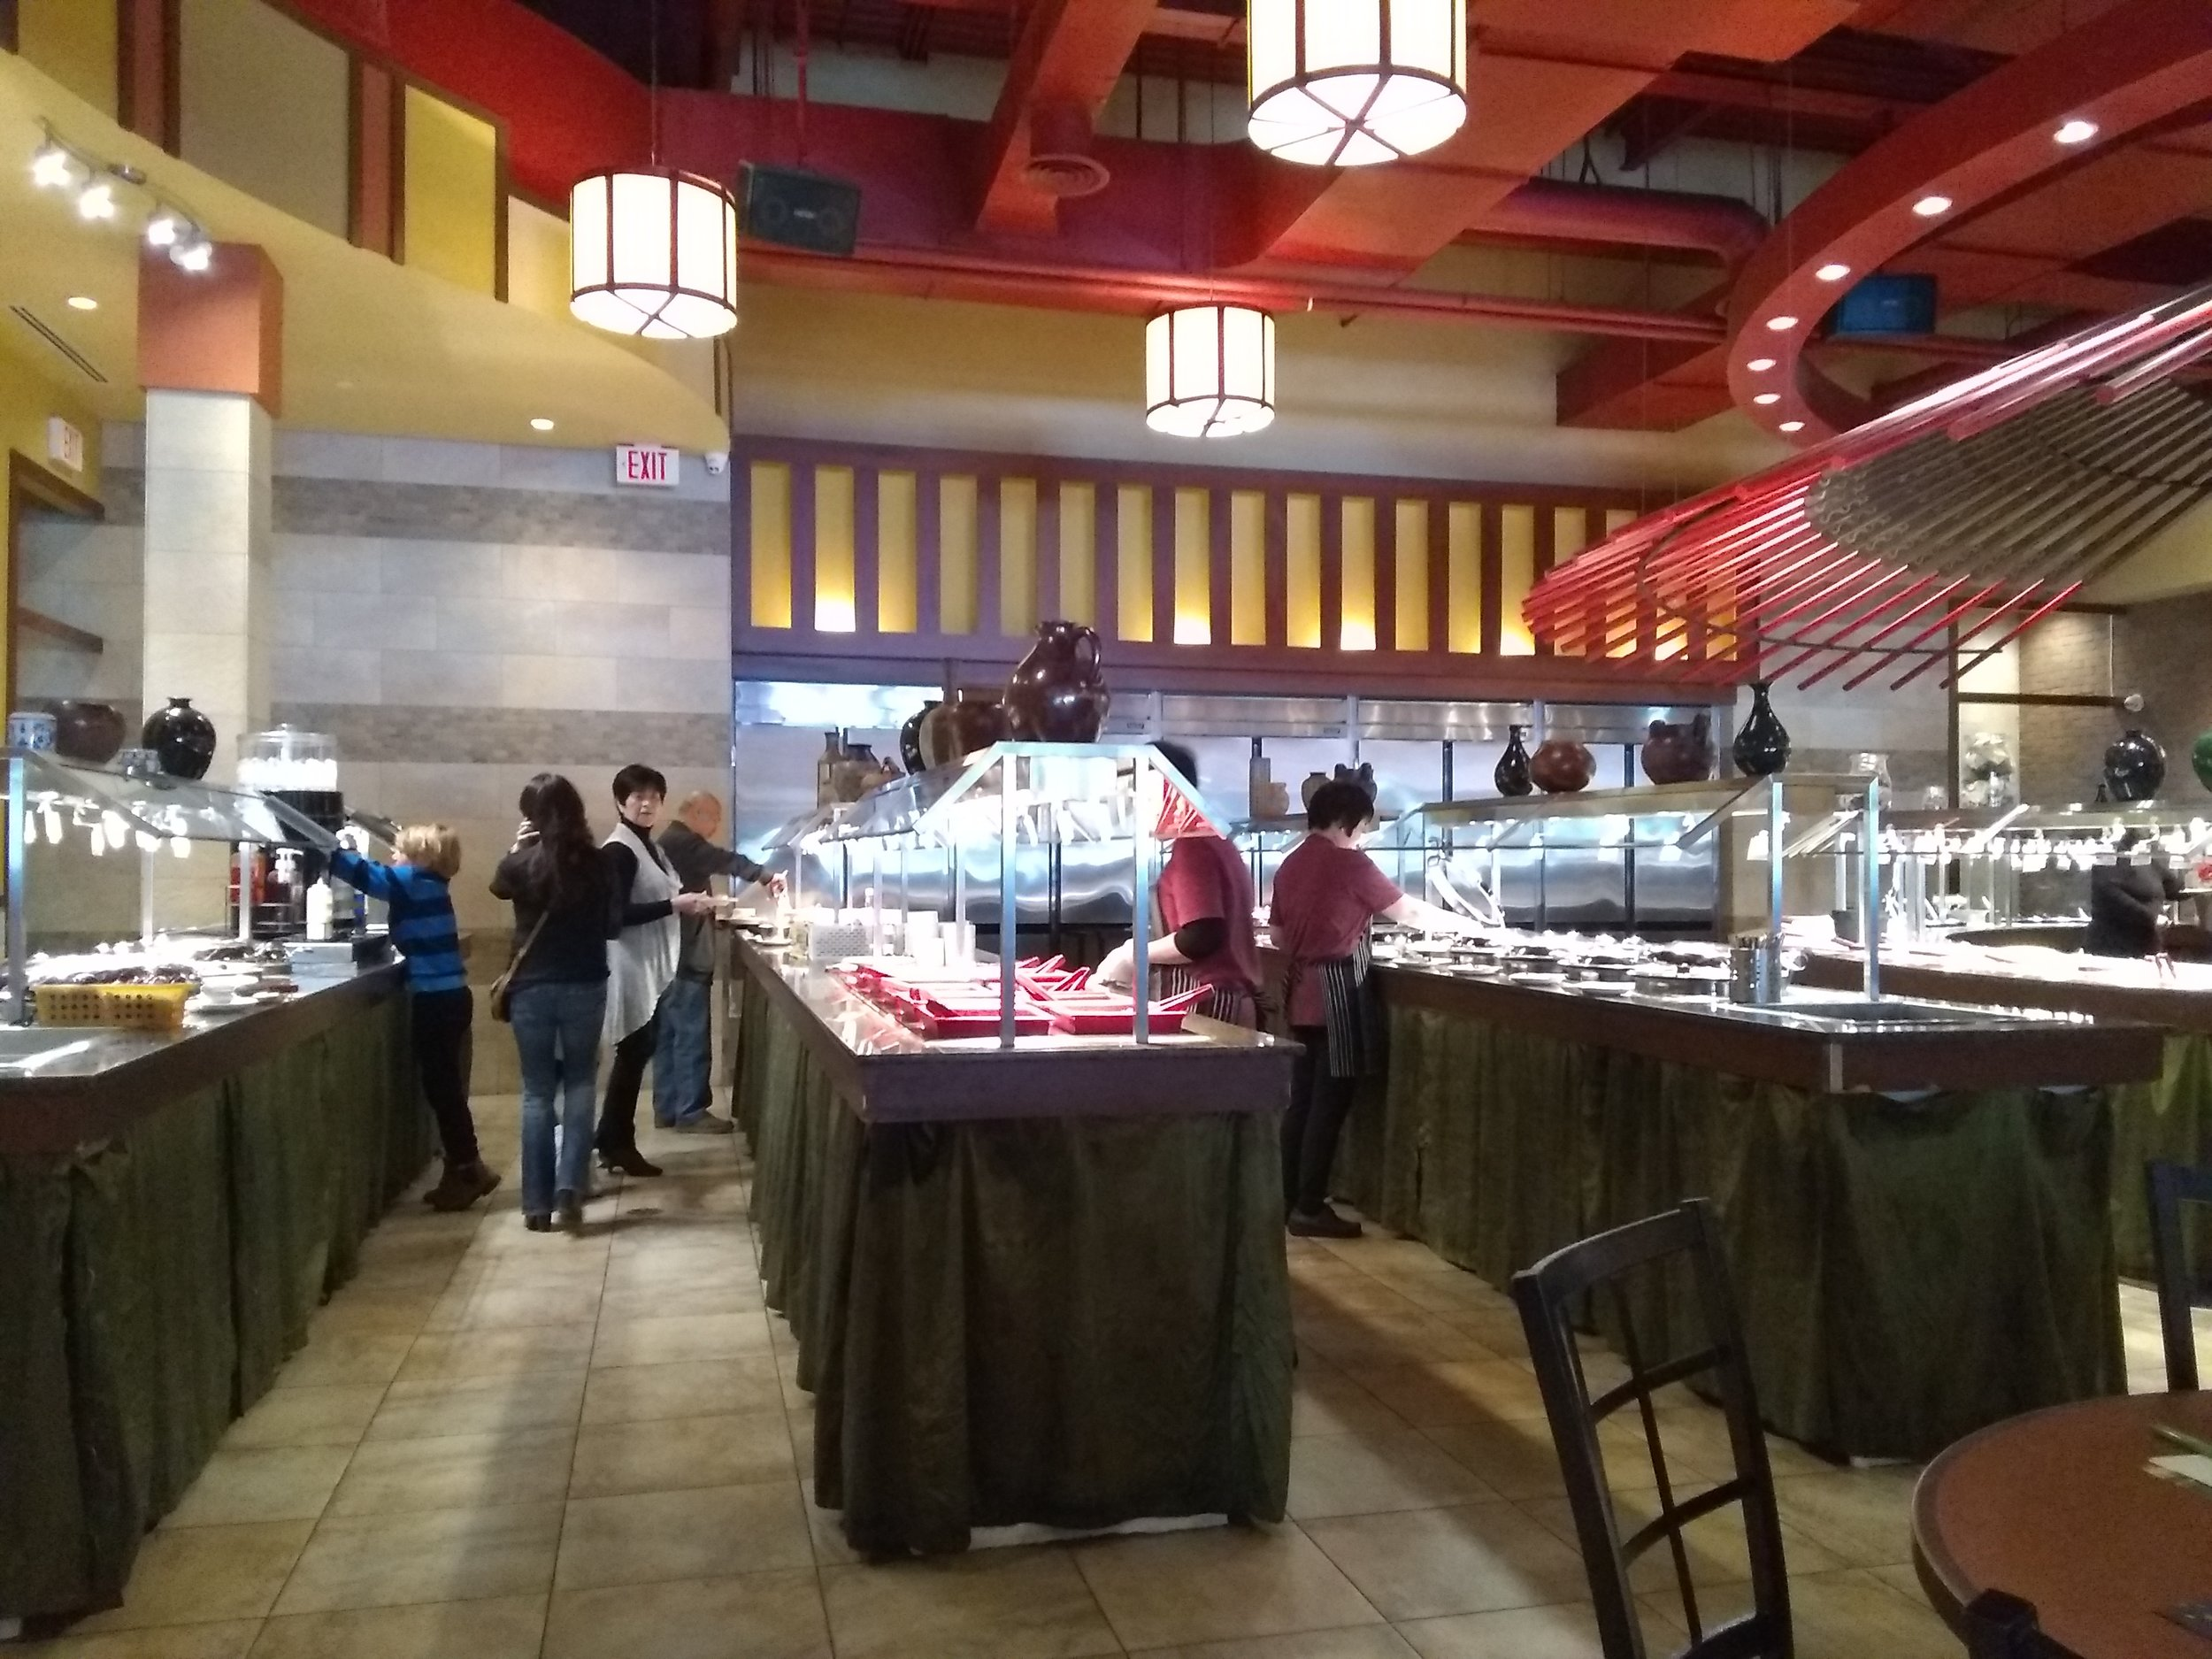 Picture of buffet area of Mongolian Grill with wide walkways